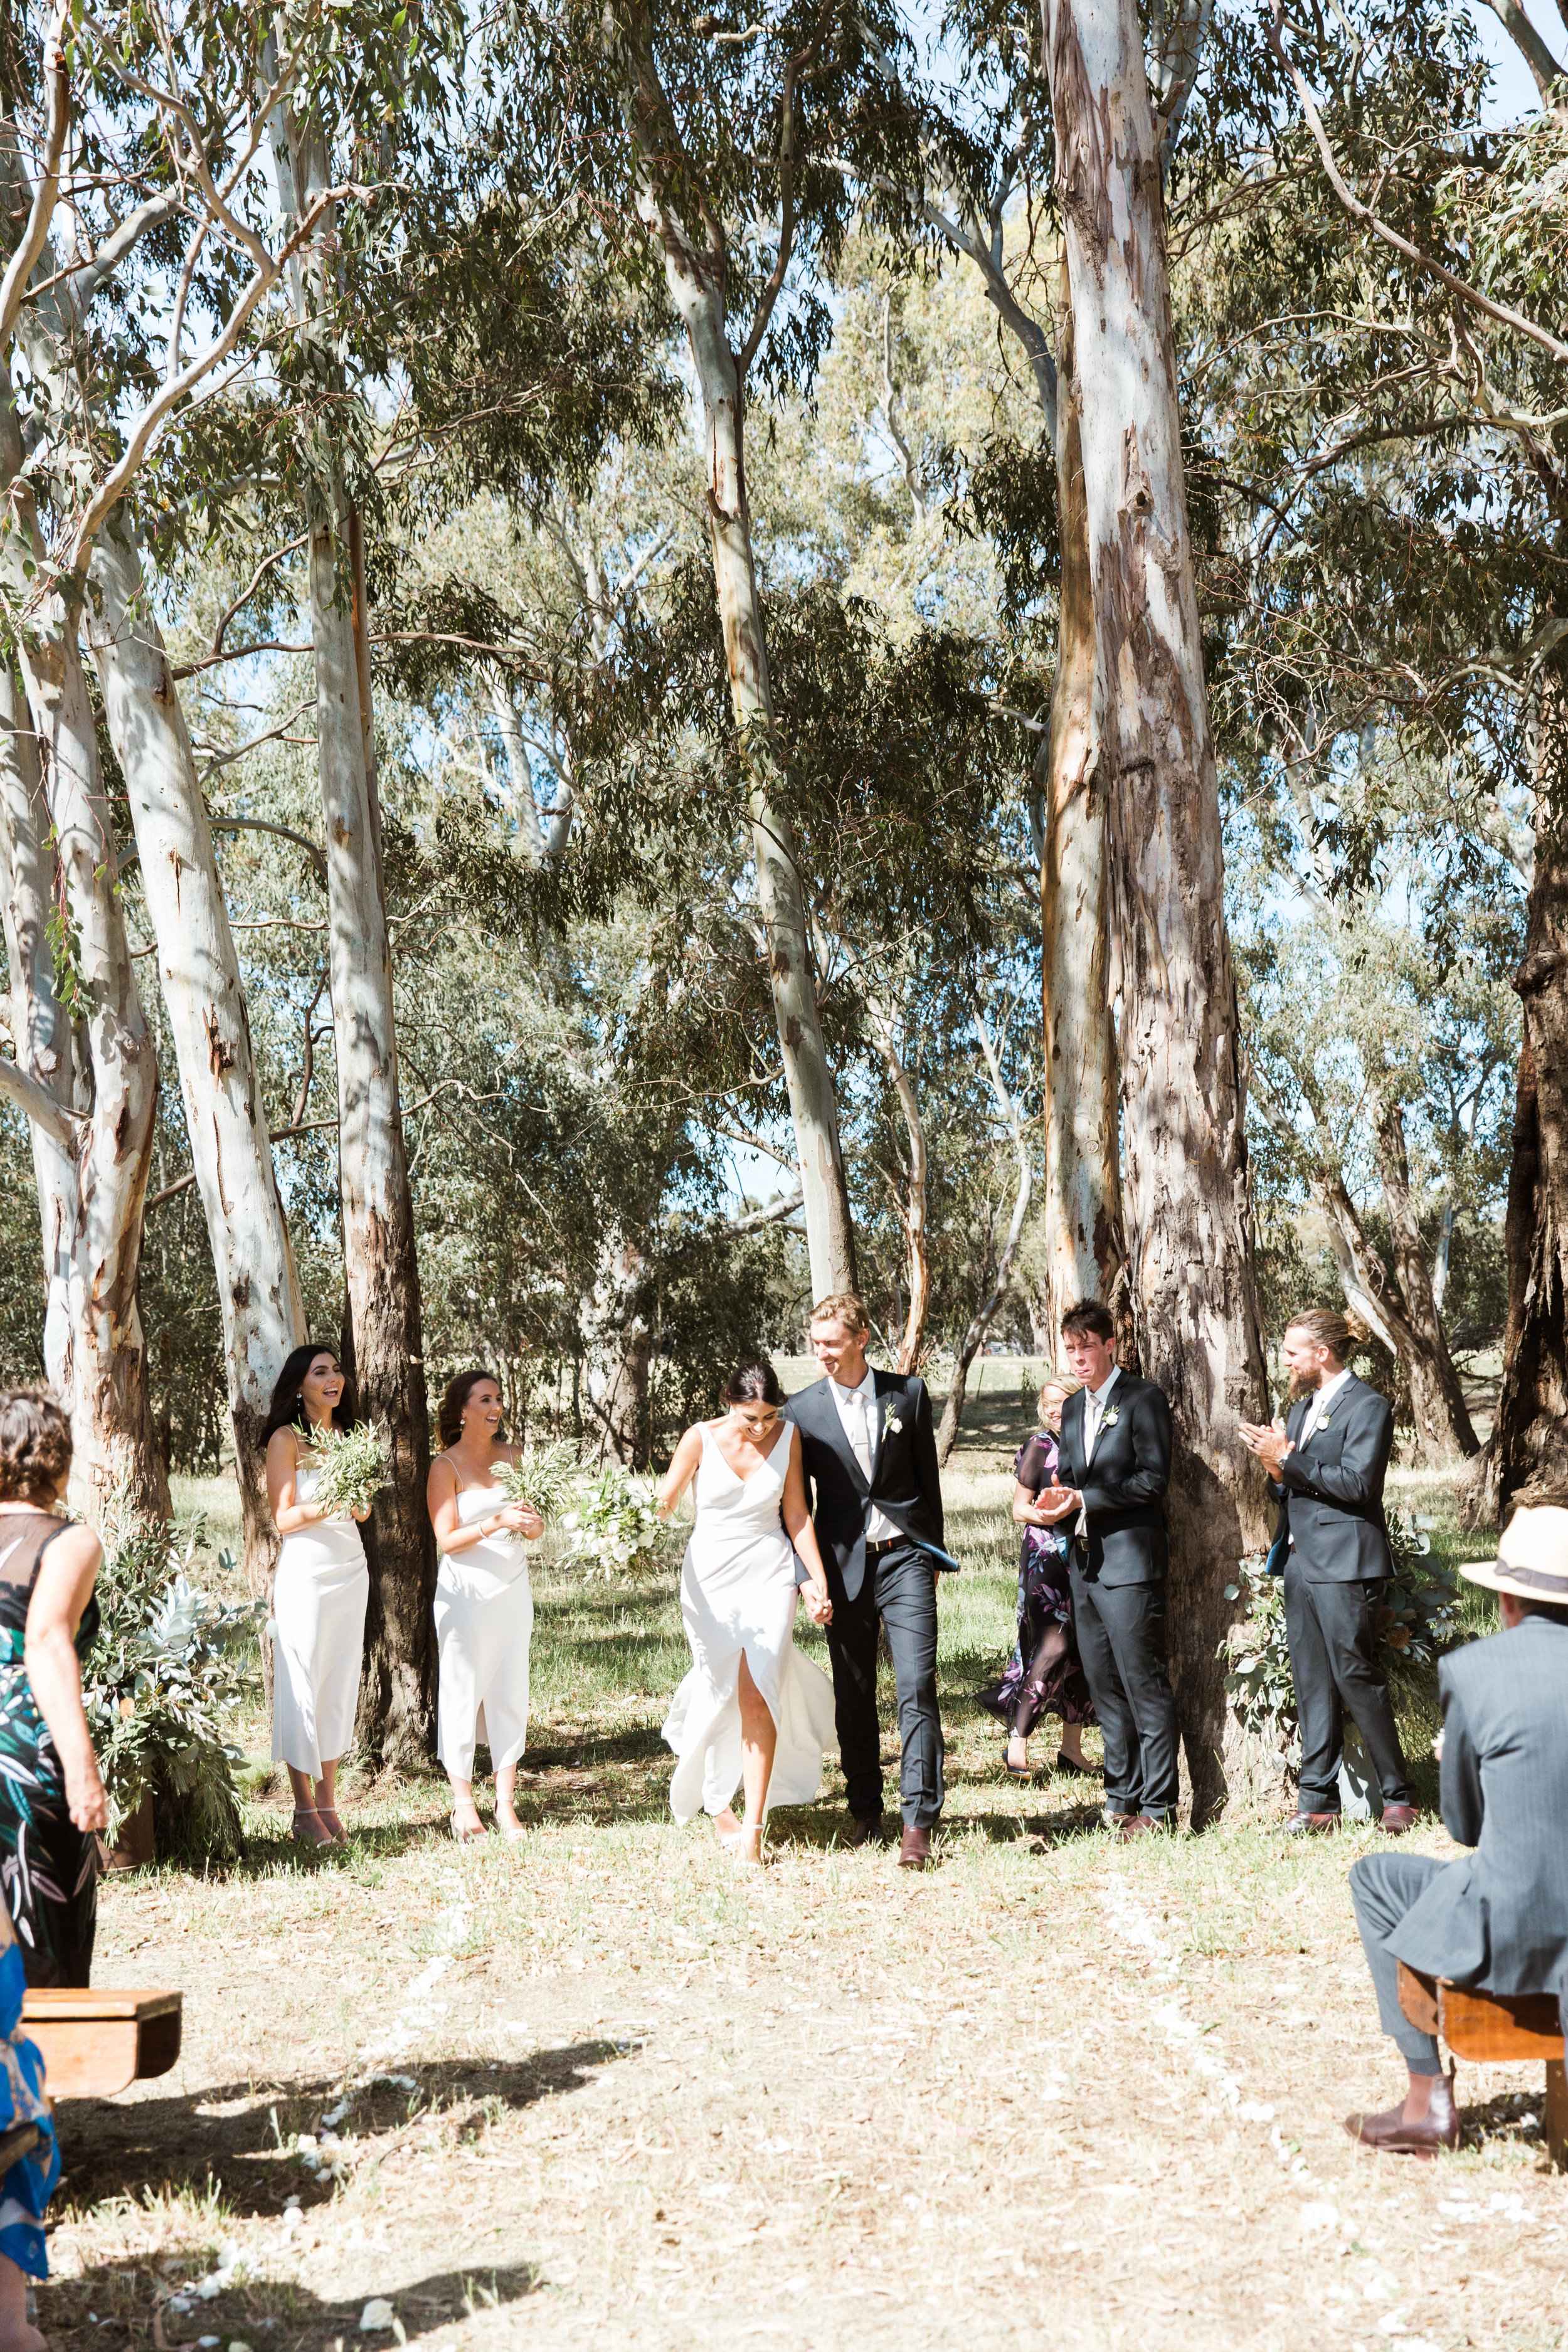 00032- Olive Tree Mediterranean Wedding in Mudgee NSW Australia Fine Art Film Wedding Lifestyle Photographer Sheri McMahon_.jpg